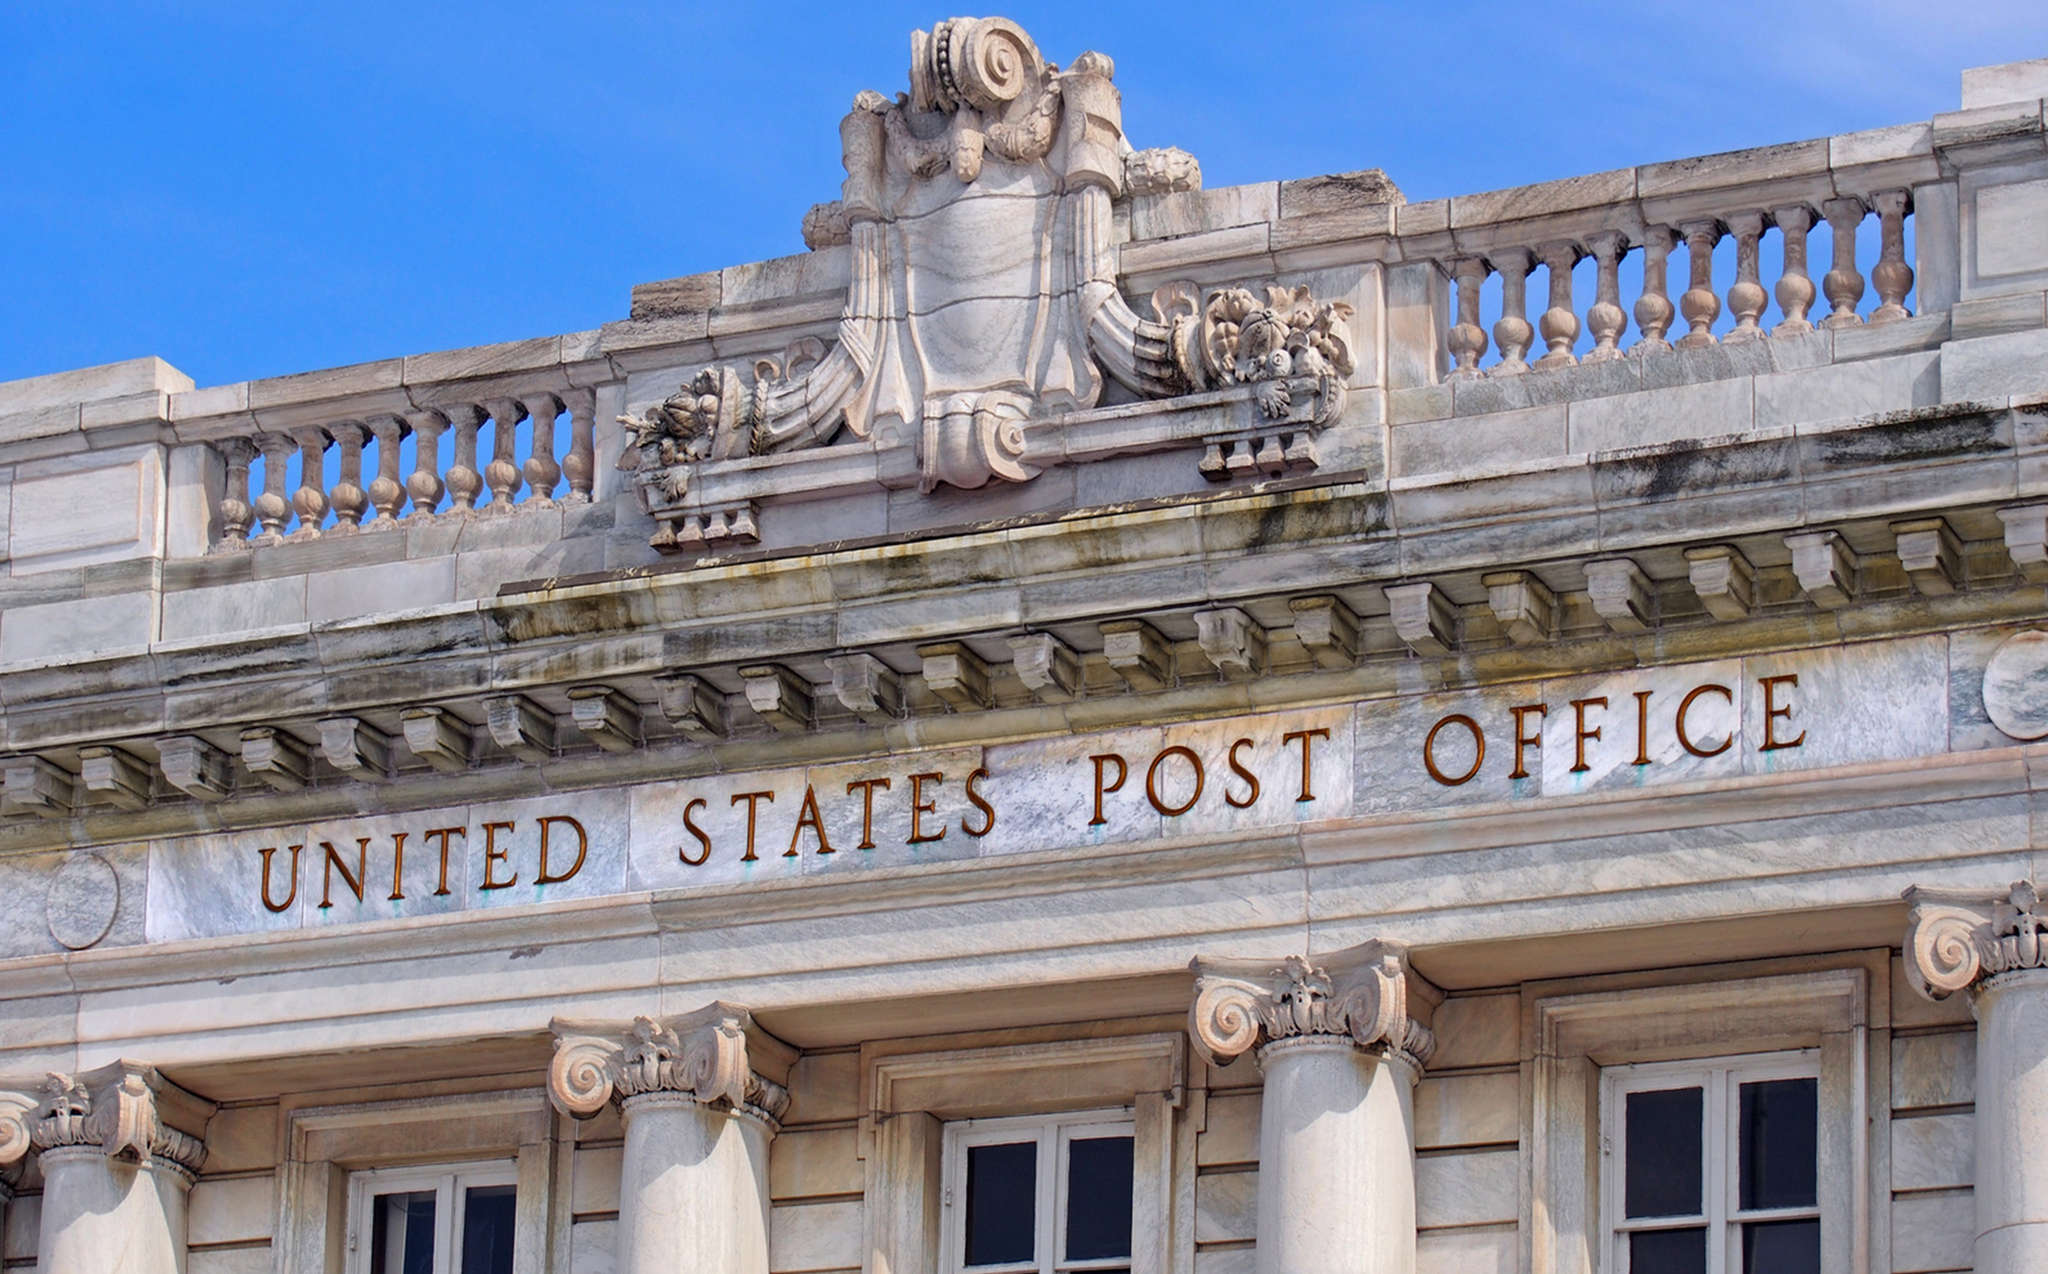 Postal banks could give consumers affordable alternatives, proponents say.